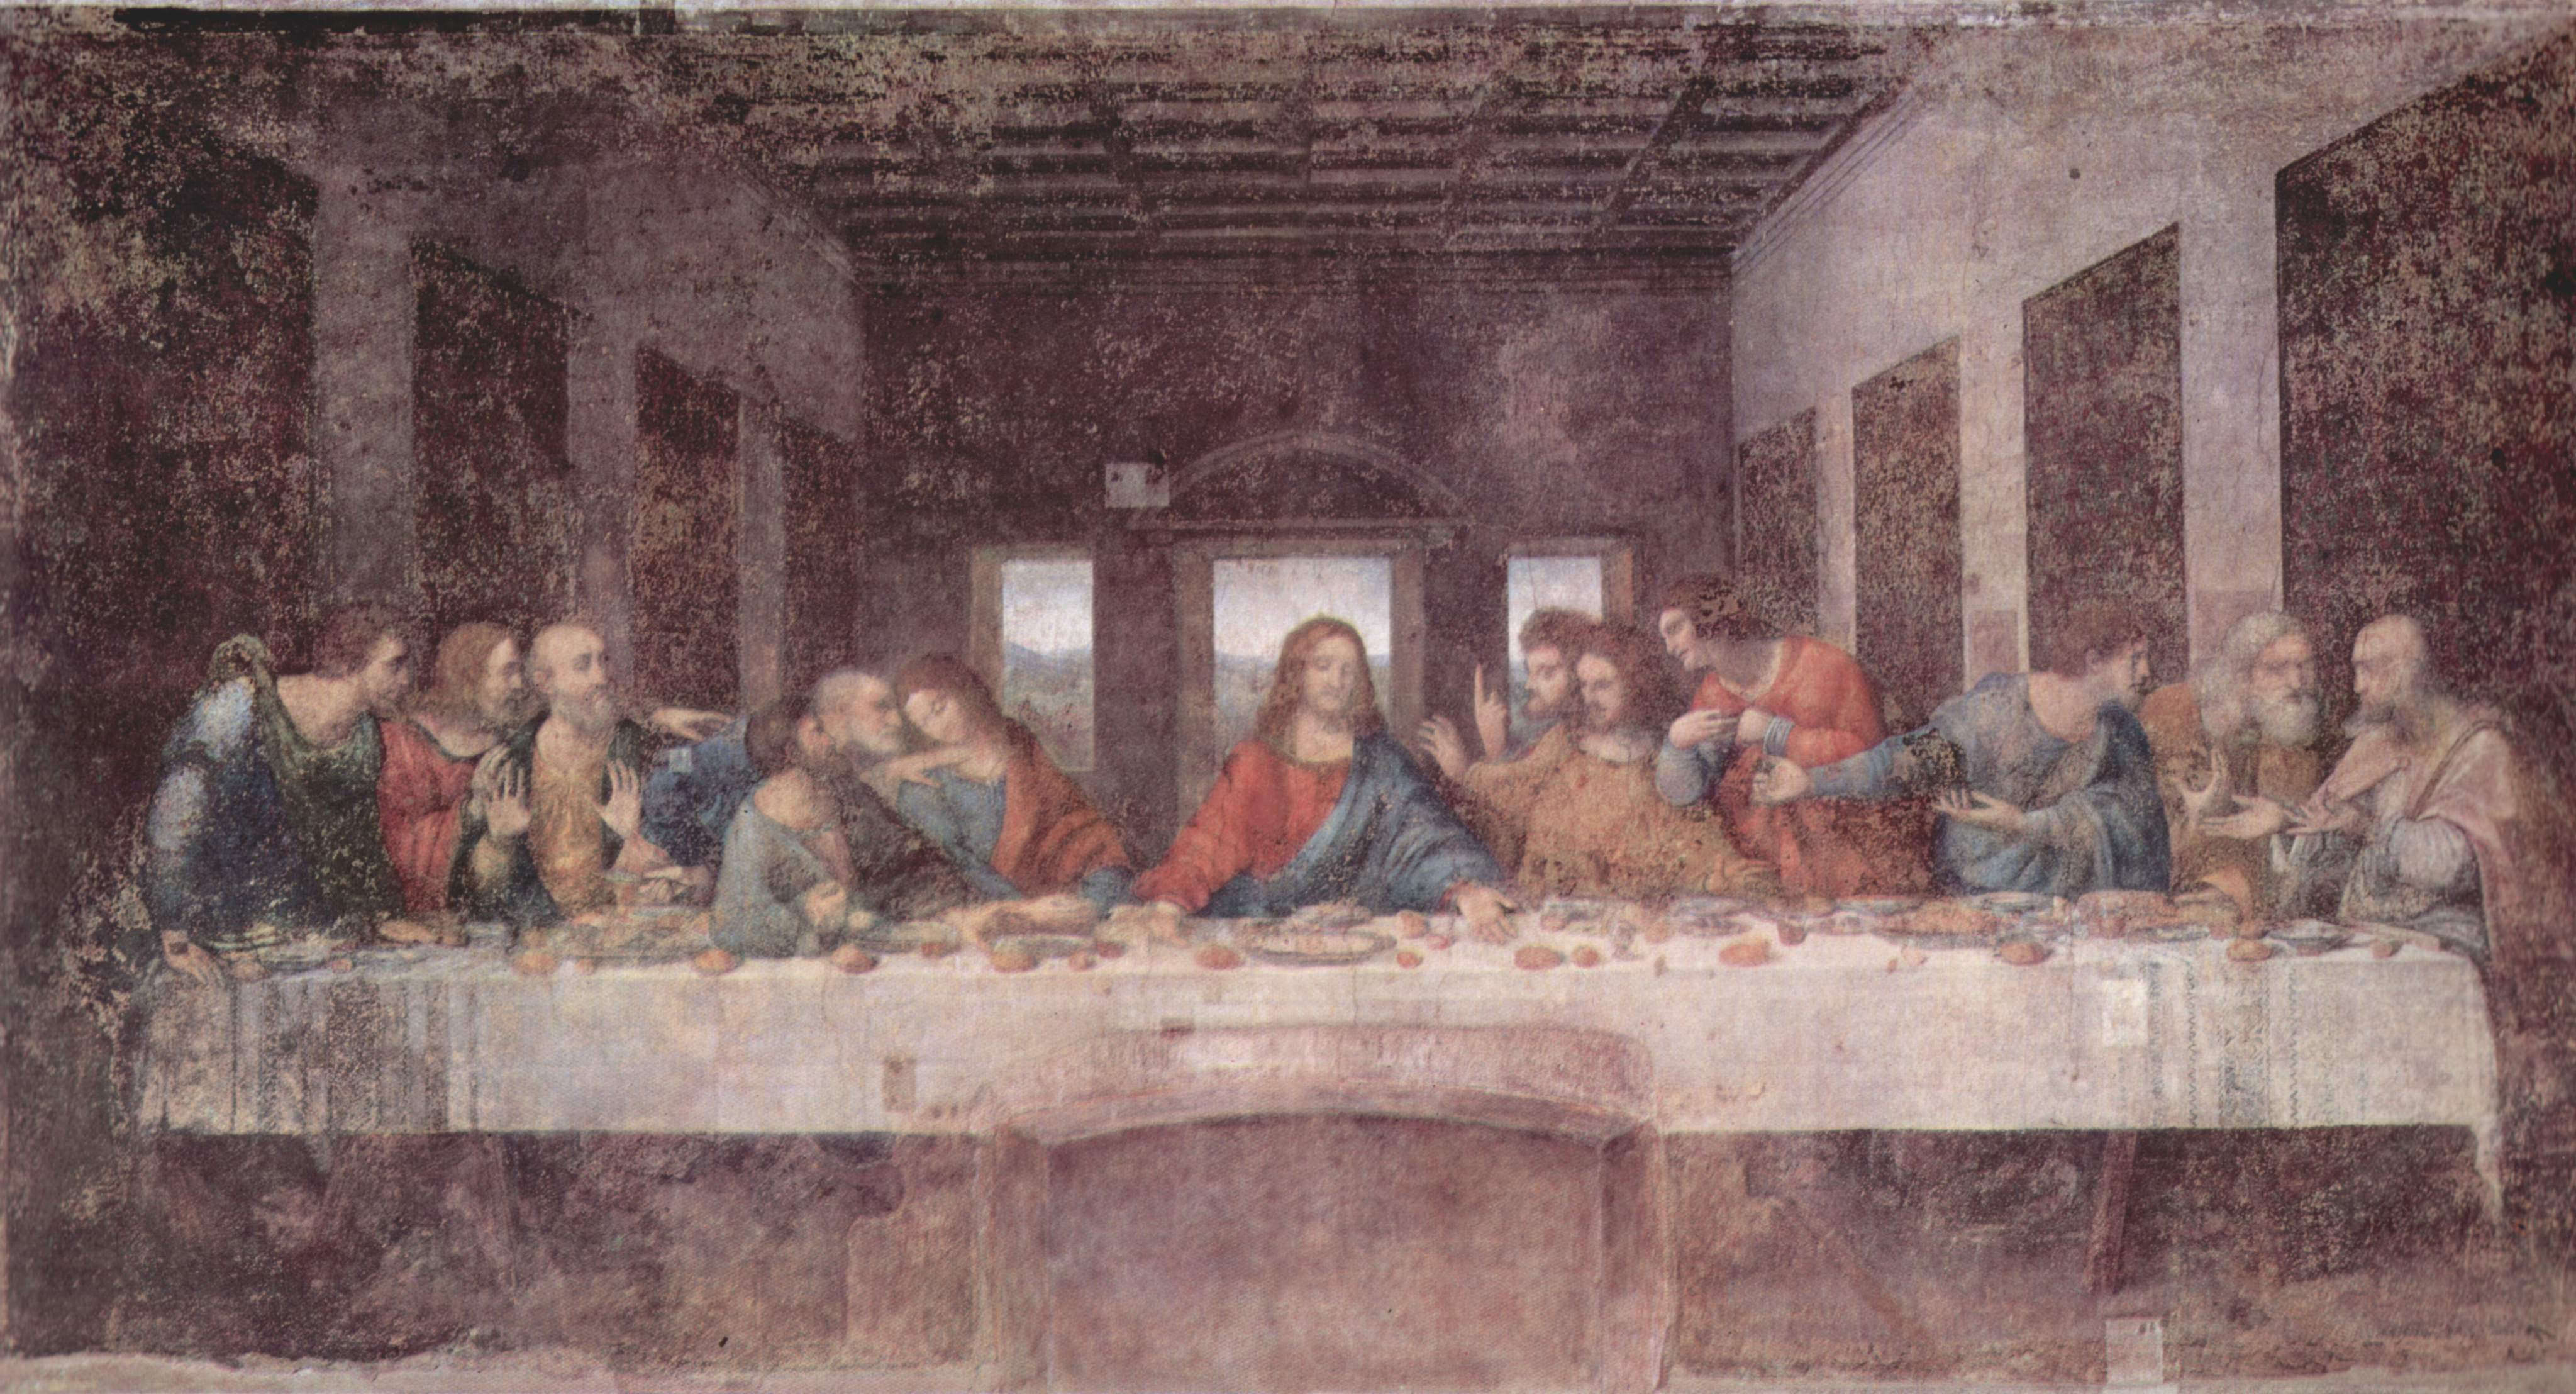 The Last Supper, 1495